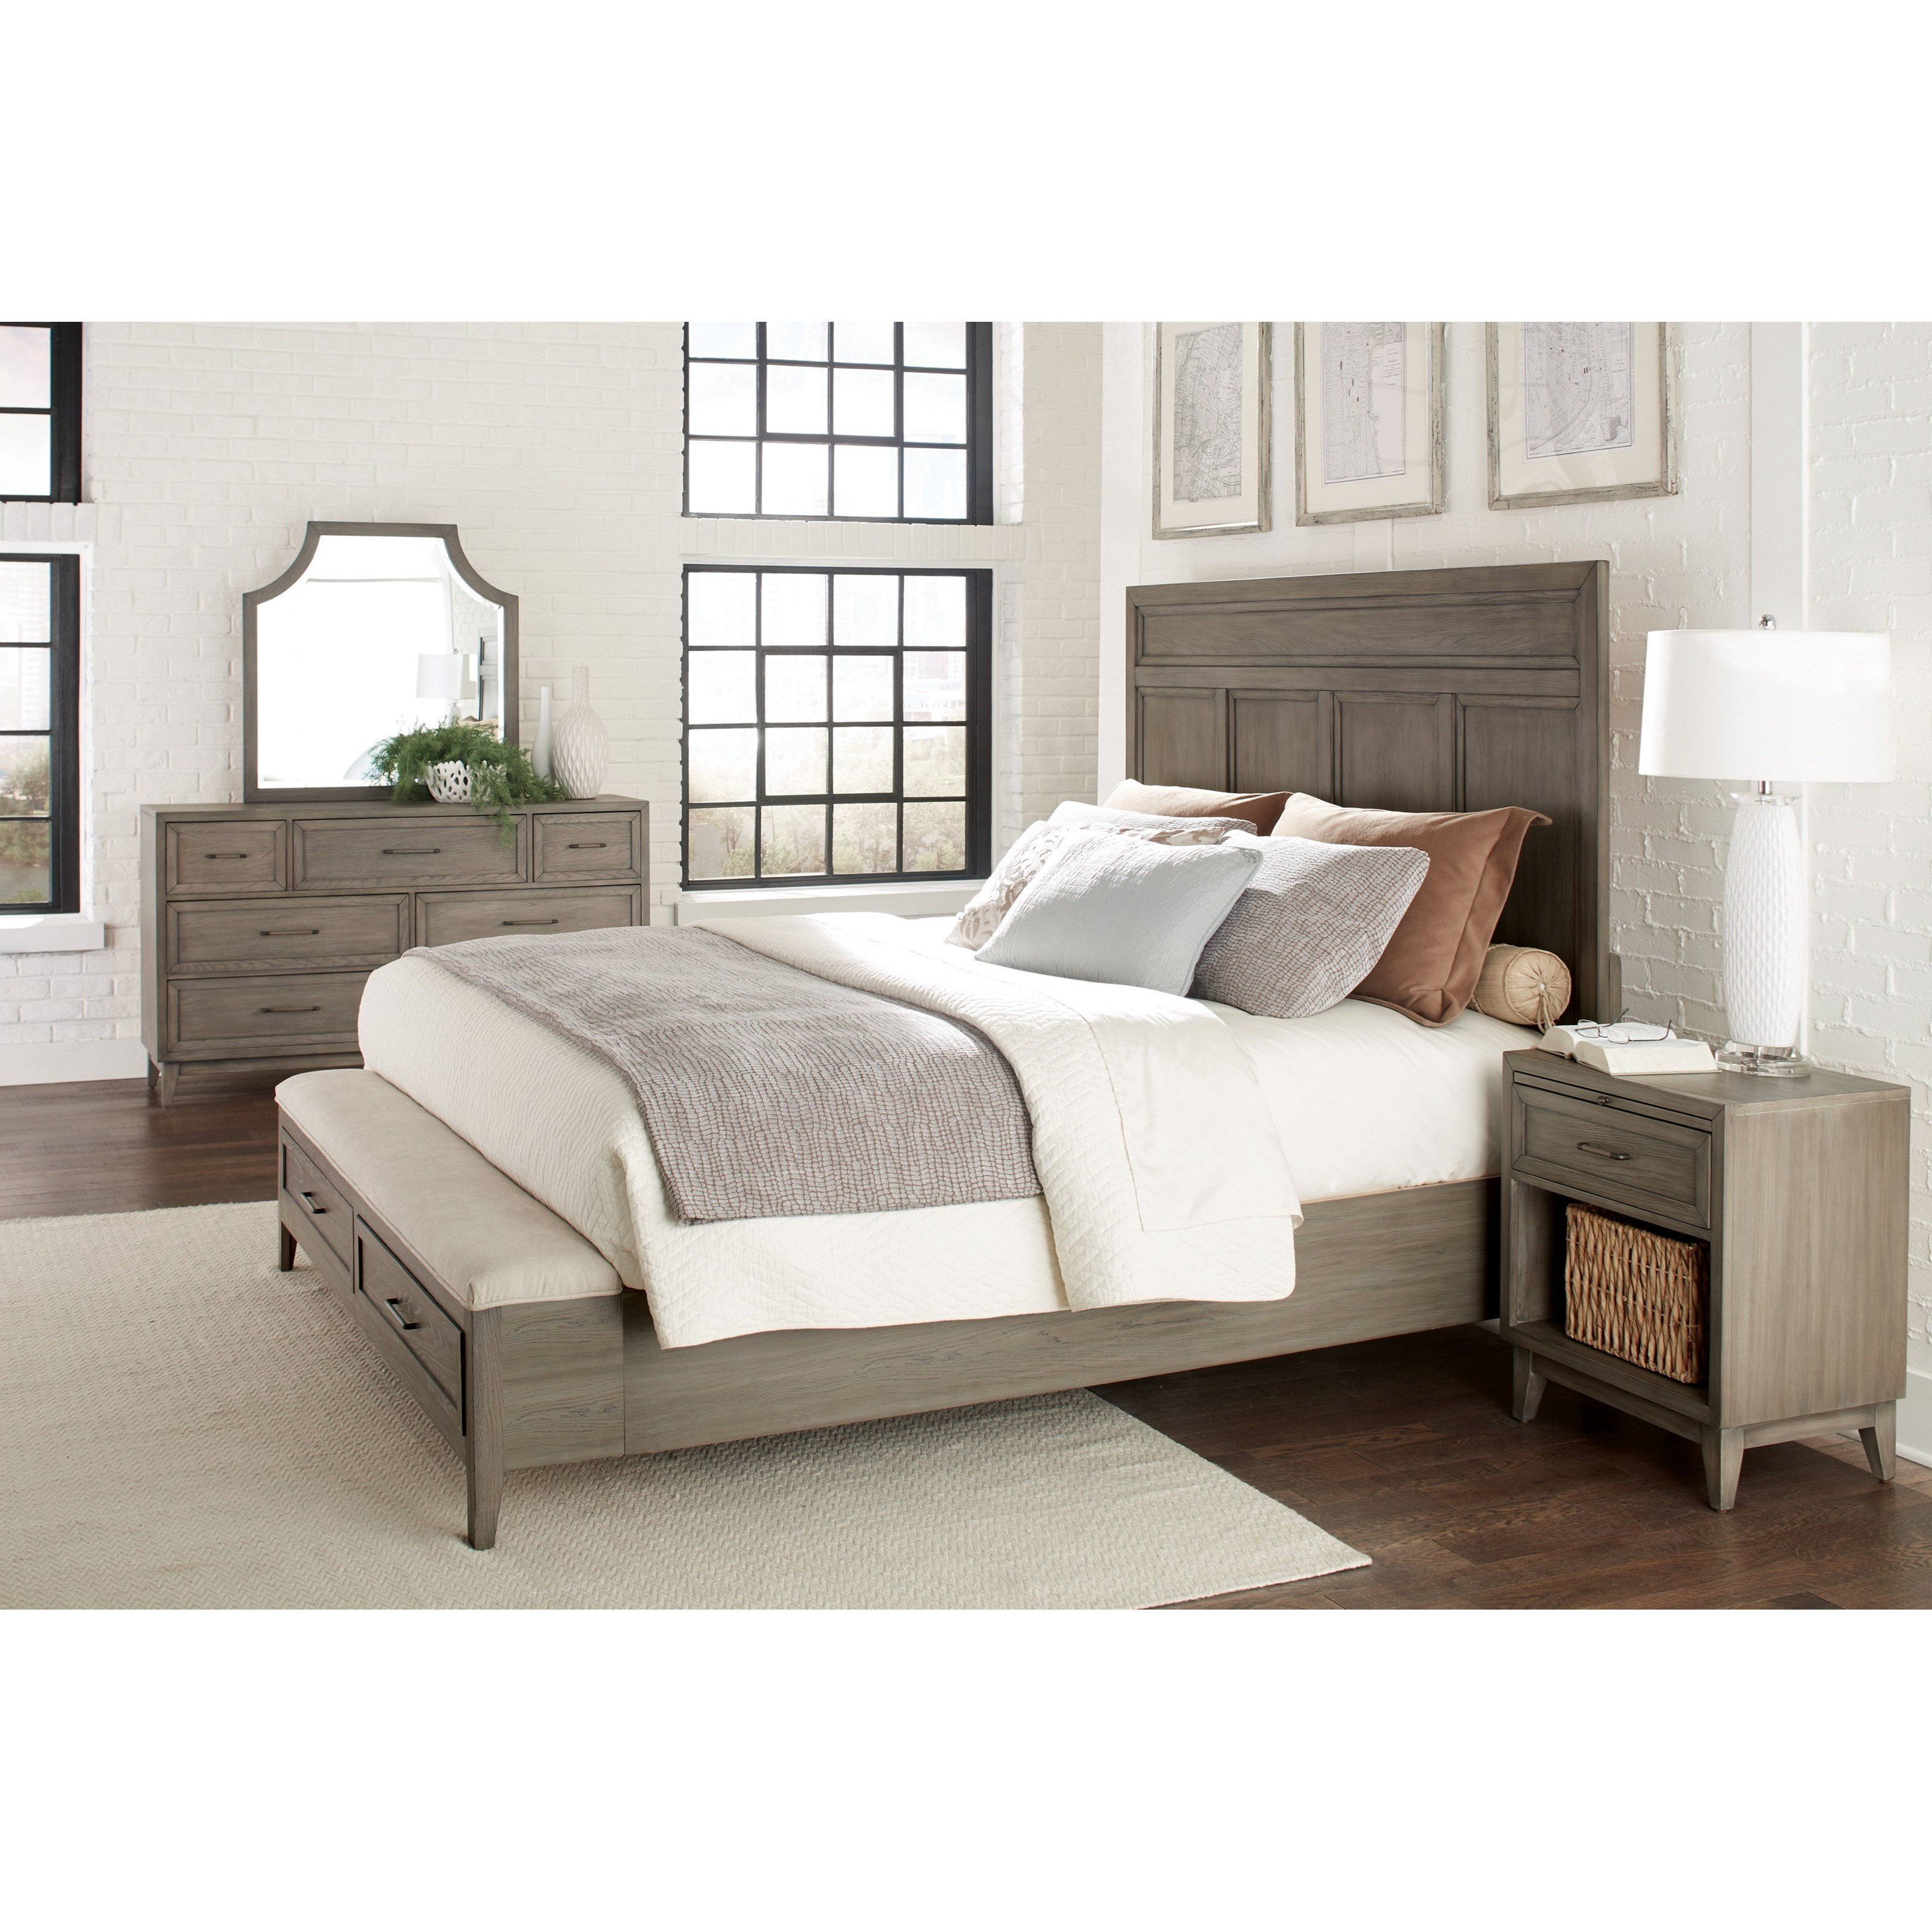 Best Riverside Furniture Vogue Queen Bedroom Group 5 Value With Pictures